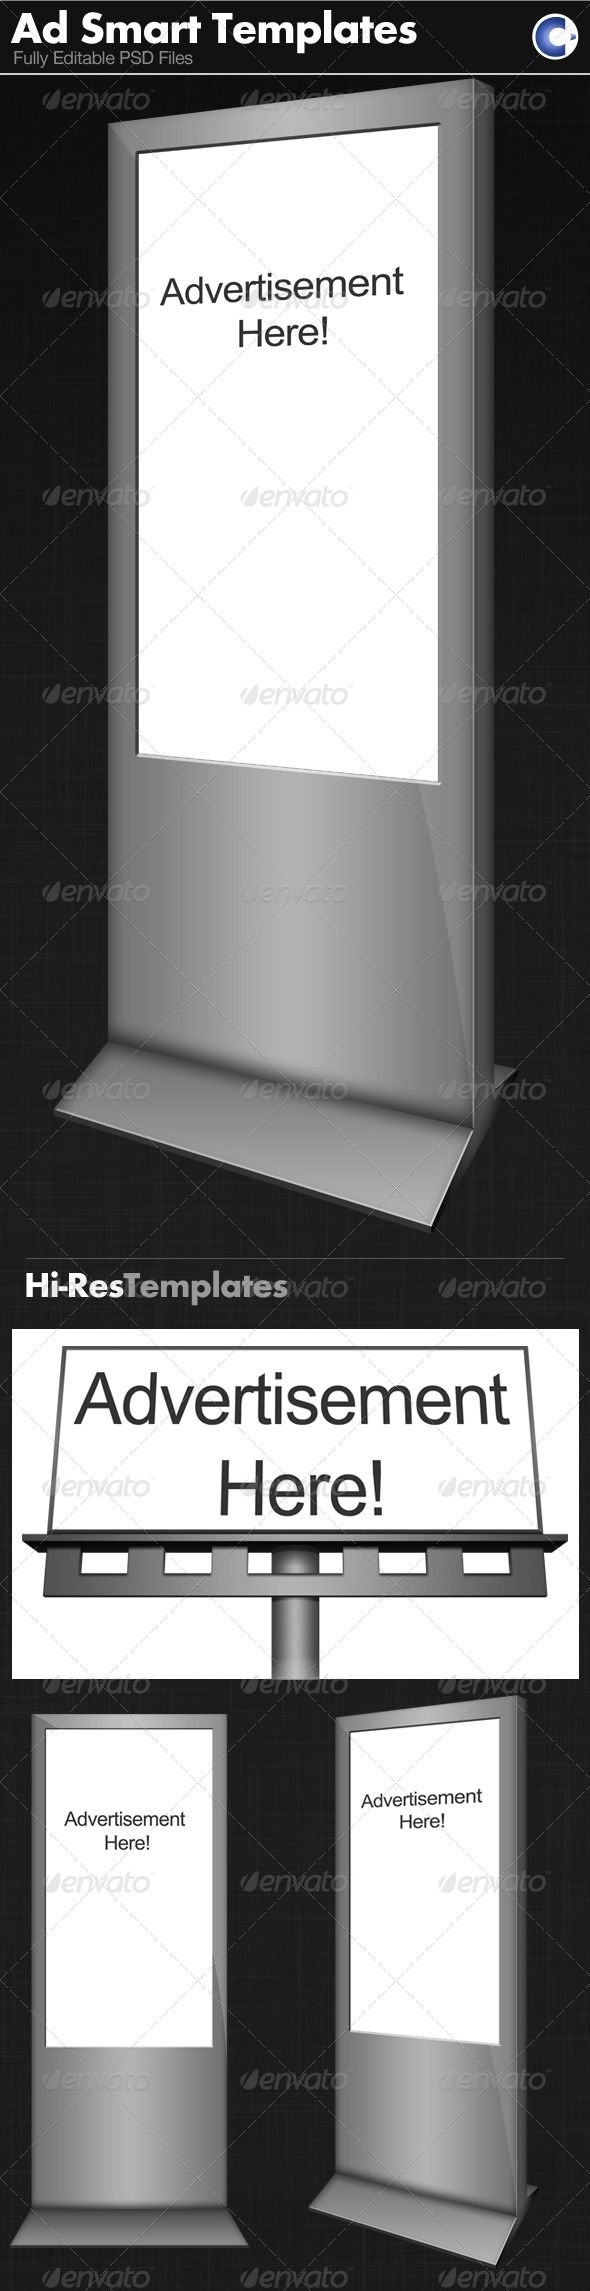 advertisement templates smart object graphicriver next time you advertisement templates smart object graphicriver next time you display a concept to a client